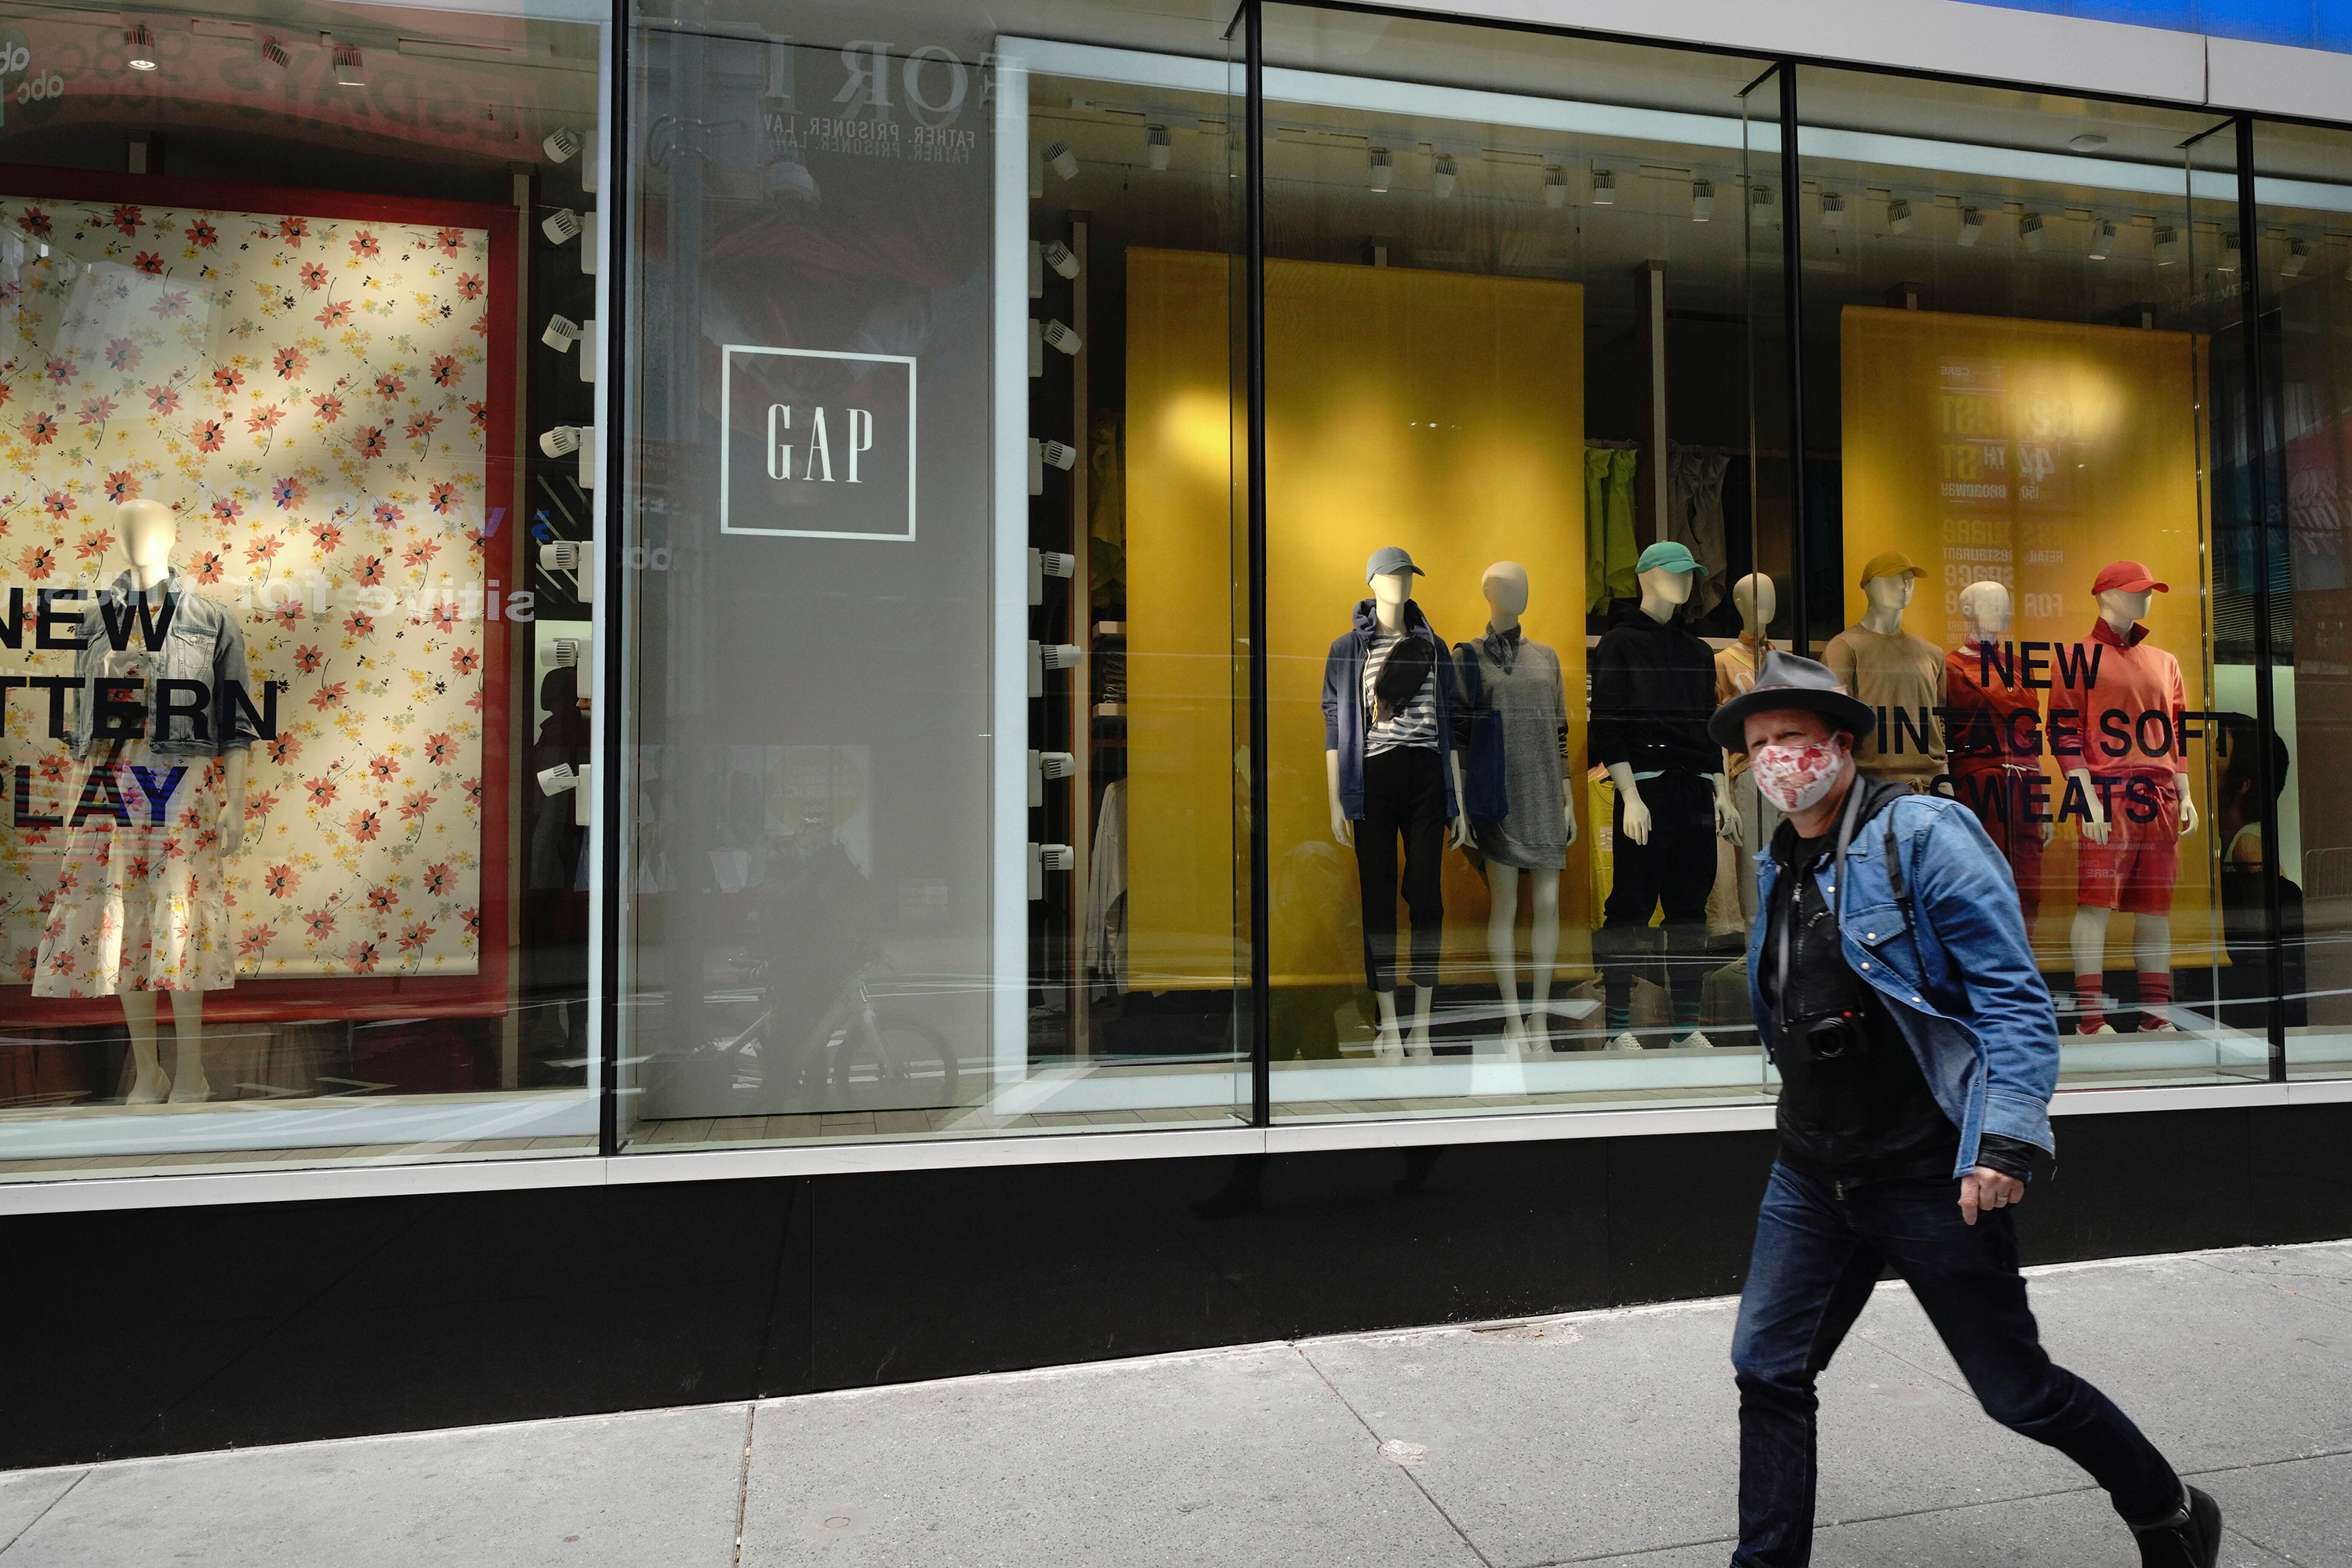 Gap's risky bet: Putting this year's unsold clothes back into stores next year